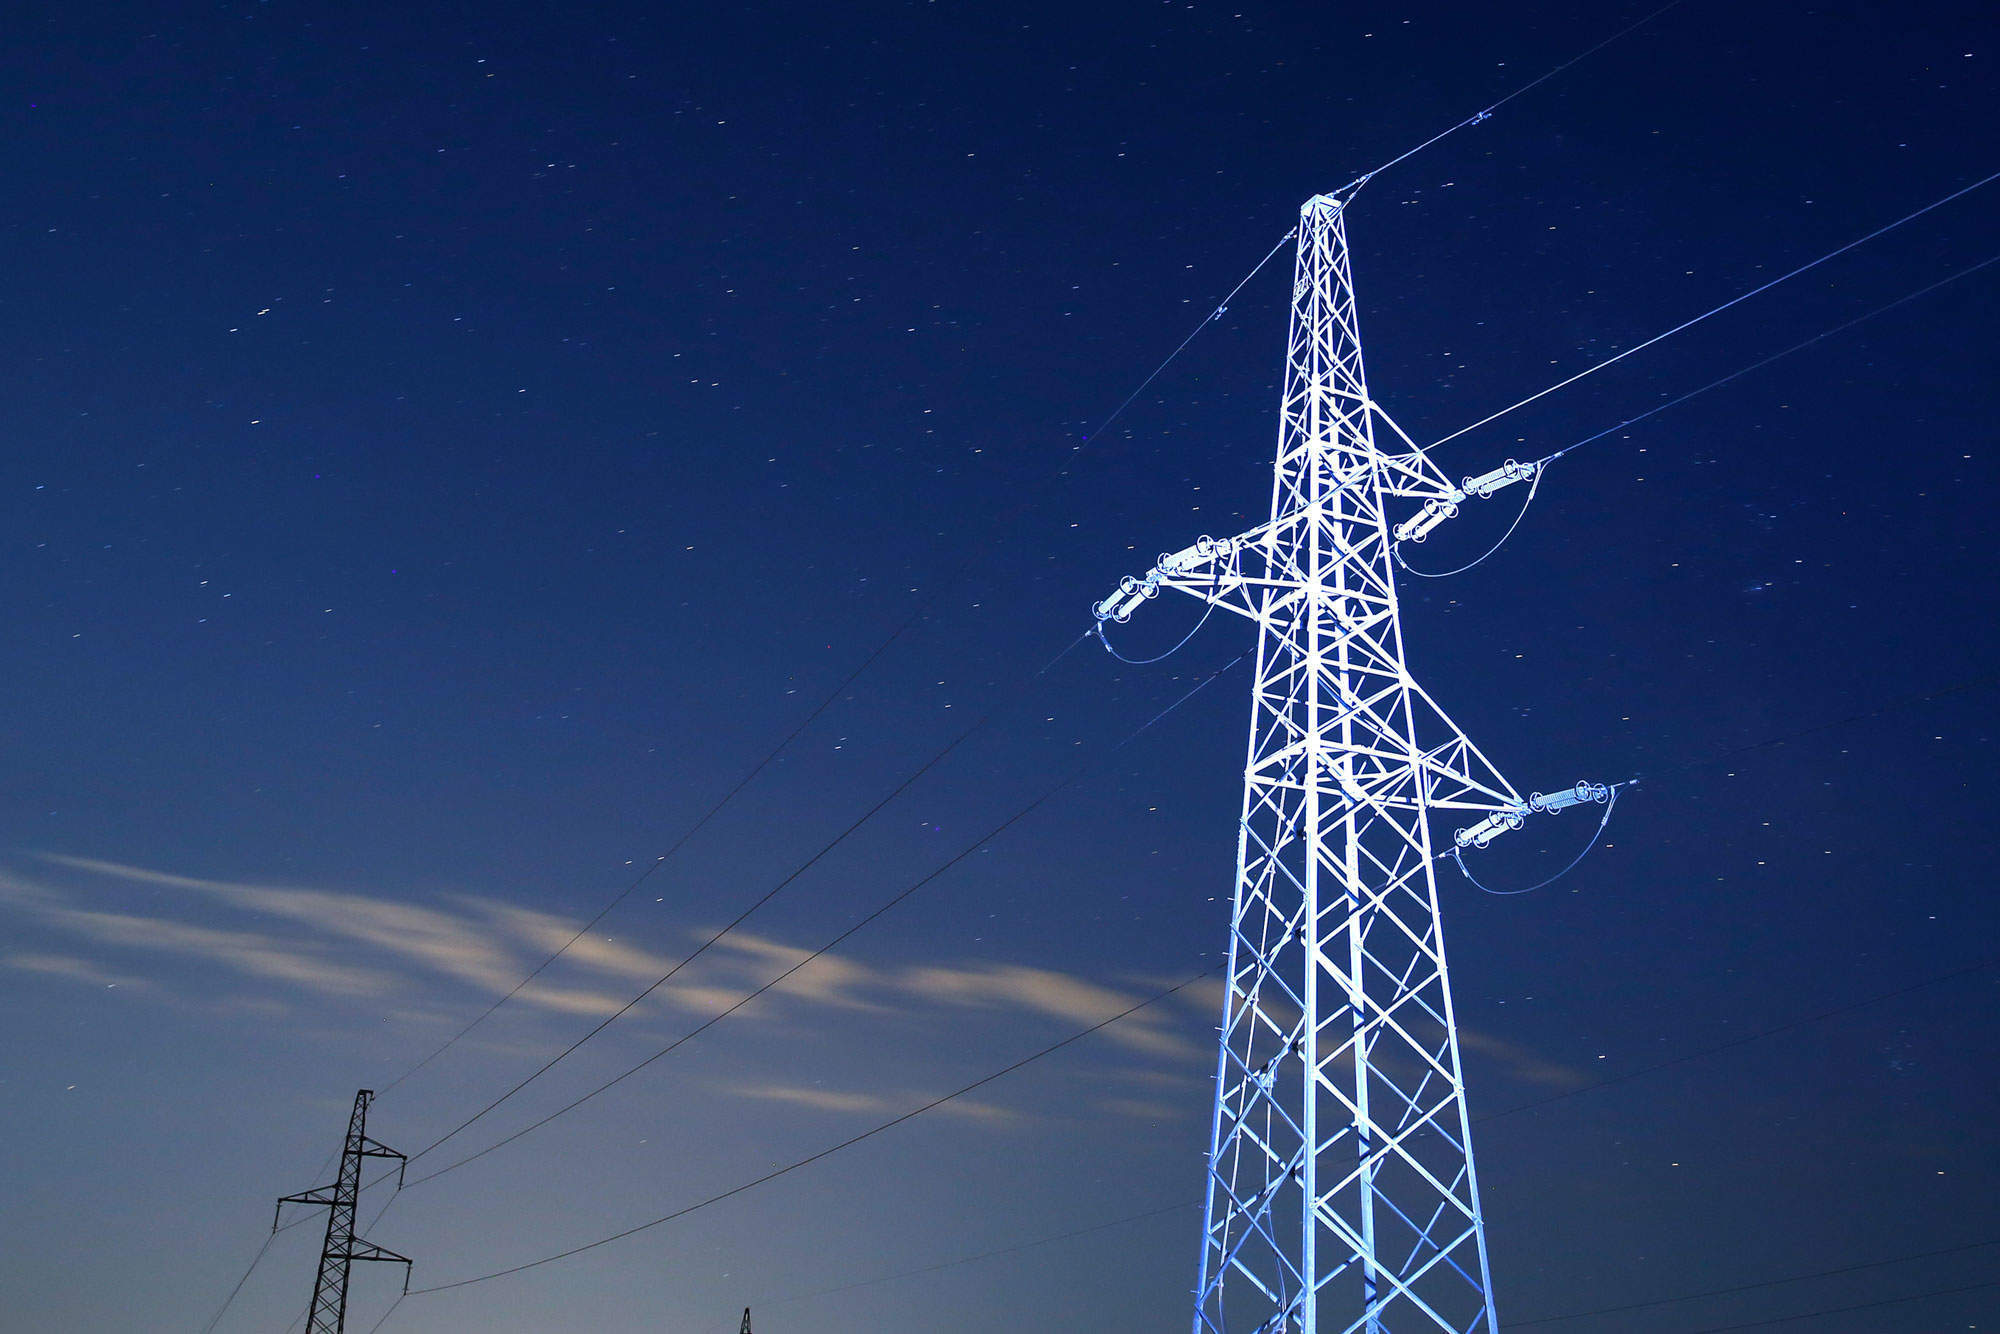 Smart grid cyberattacks could create multi-country blackouts, but the energy industry isn't prepared